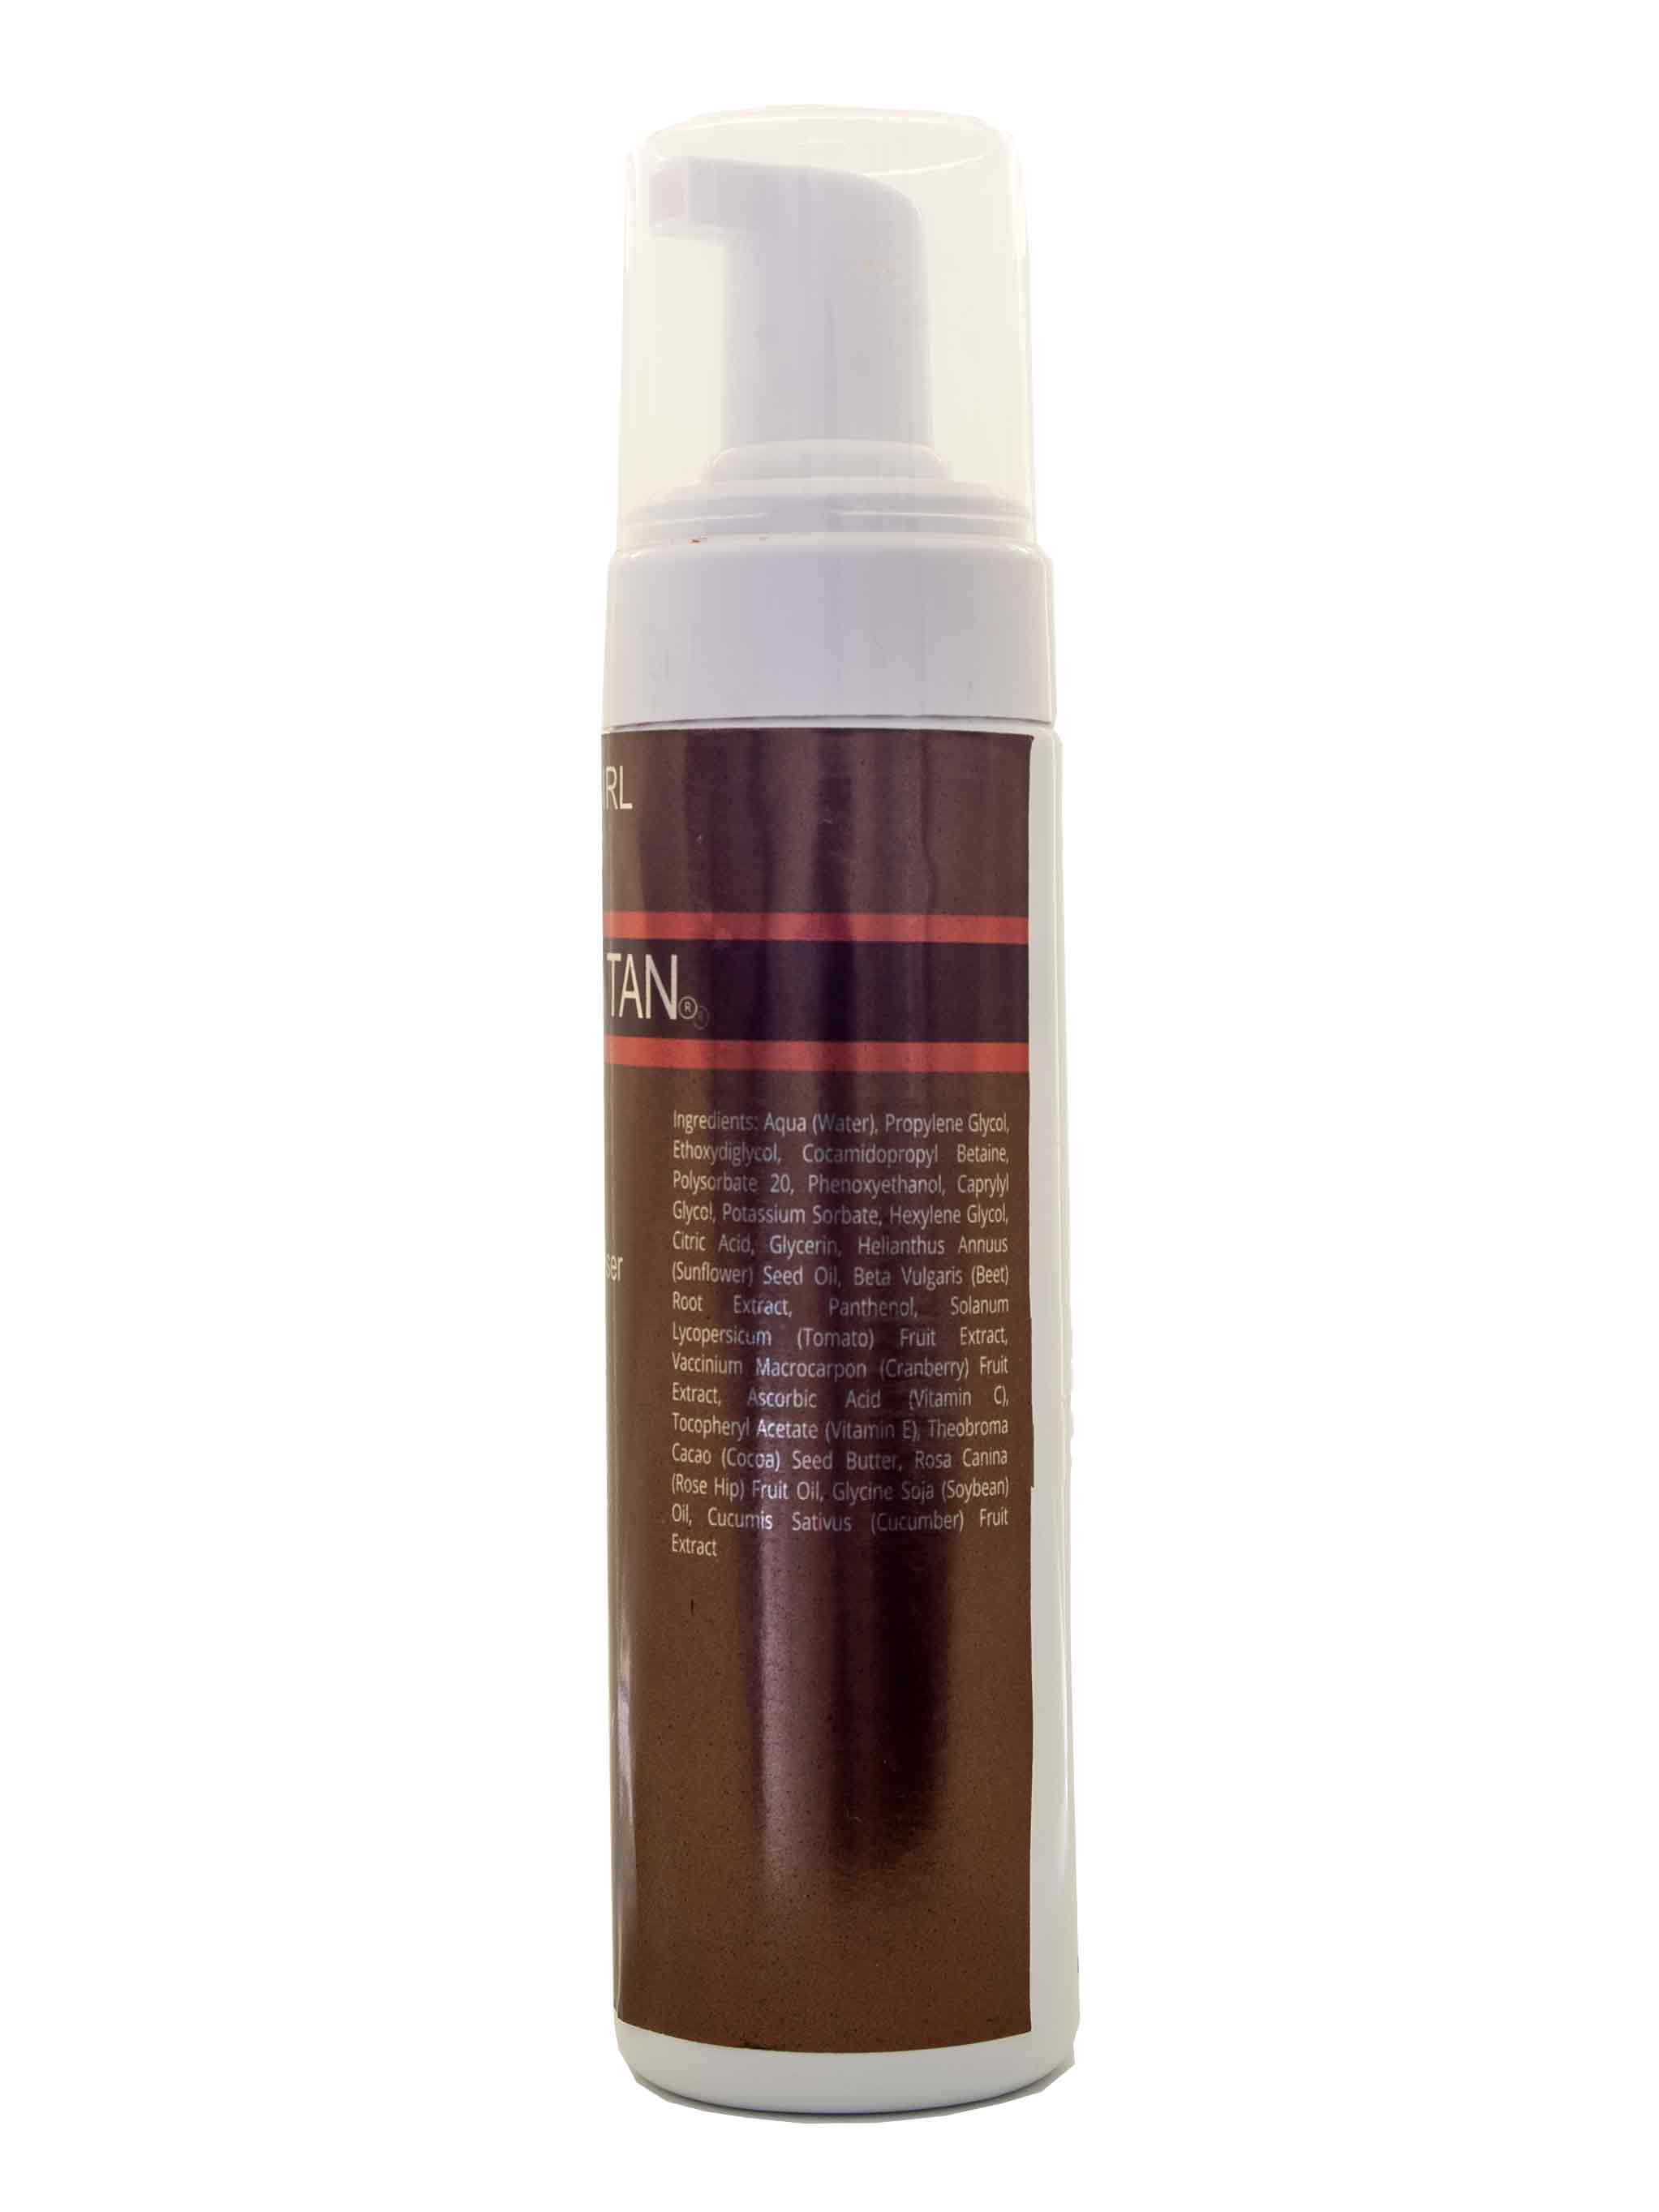 BRONZAN TAN SELF TAN ERASER - 6.7 OZ - BRONZAN TAN